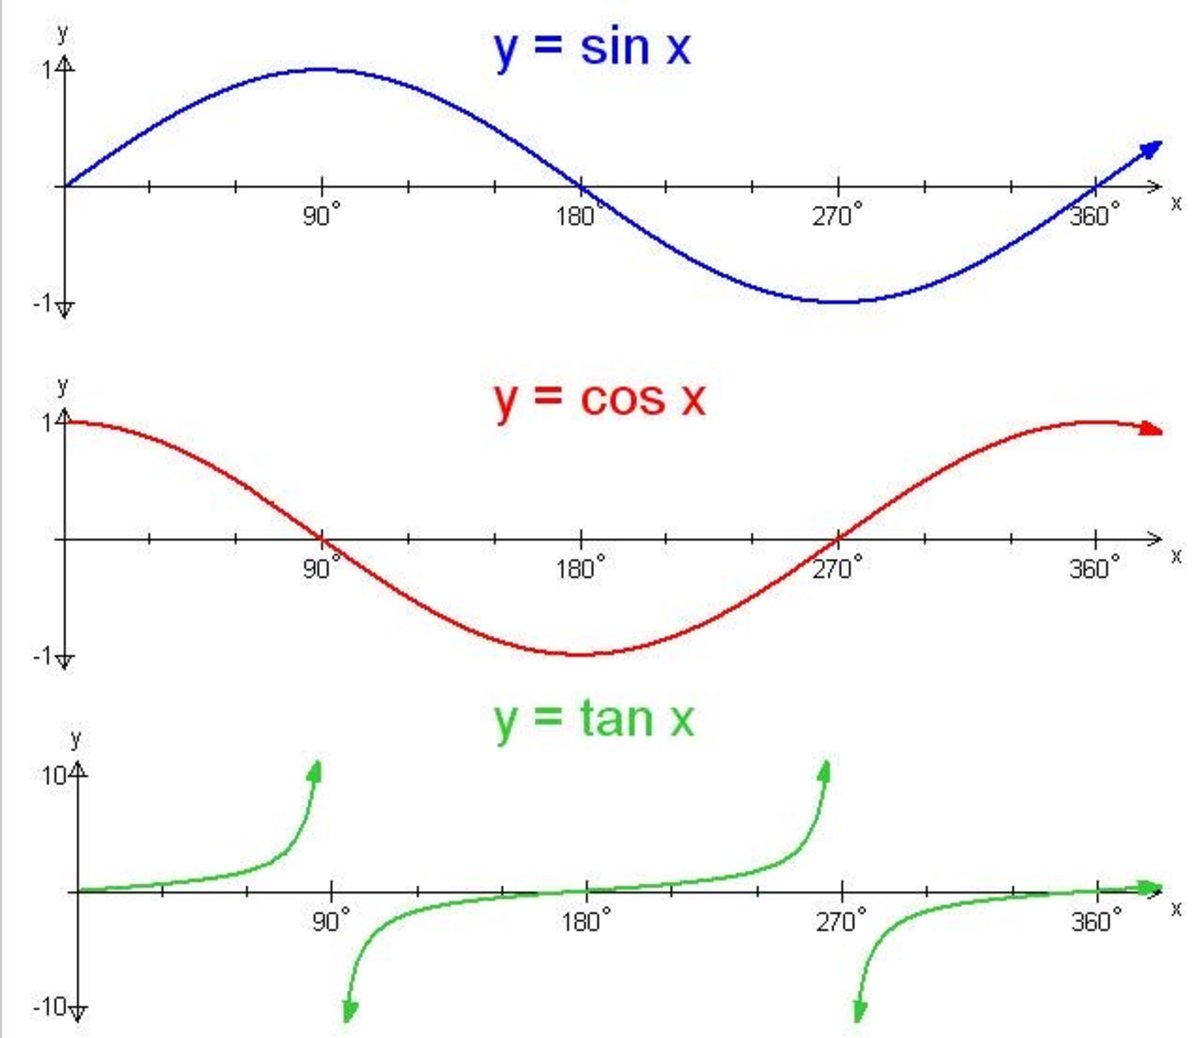 sine, cosine and tangent graphs - remember the key points: 0, 90, 180, 270, 360 (click to enlarge)